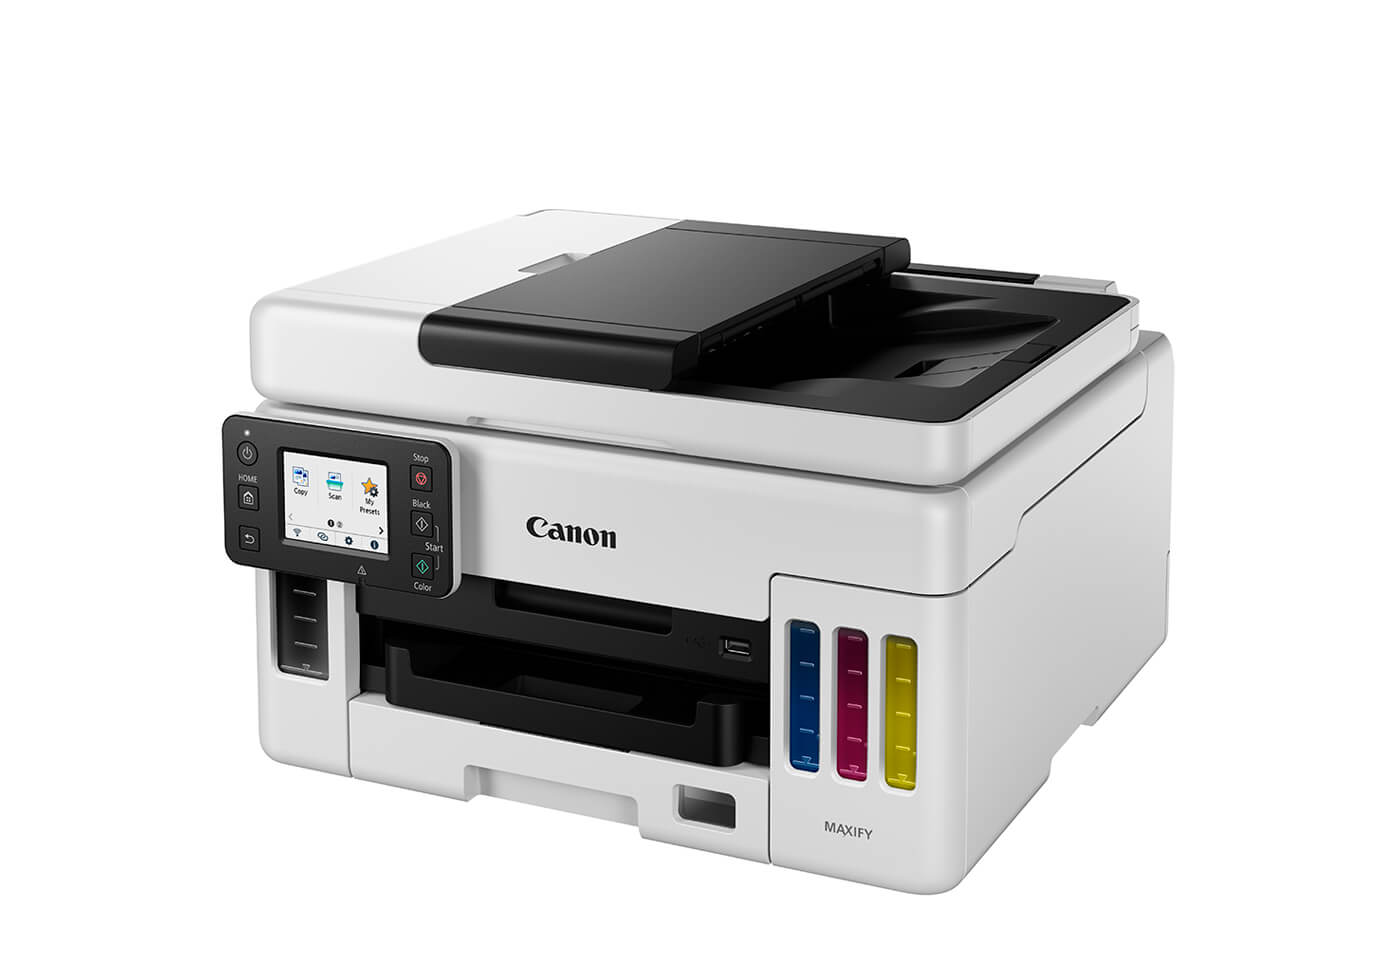 Side profile image of MAXIFY GX6060 MegaTank office printer